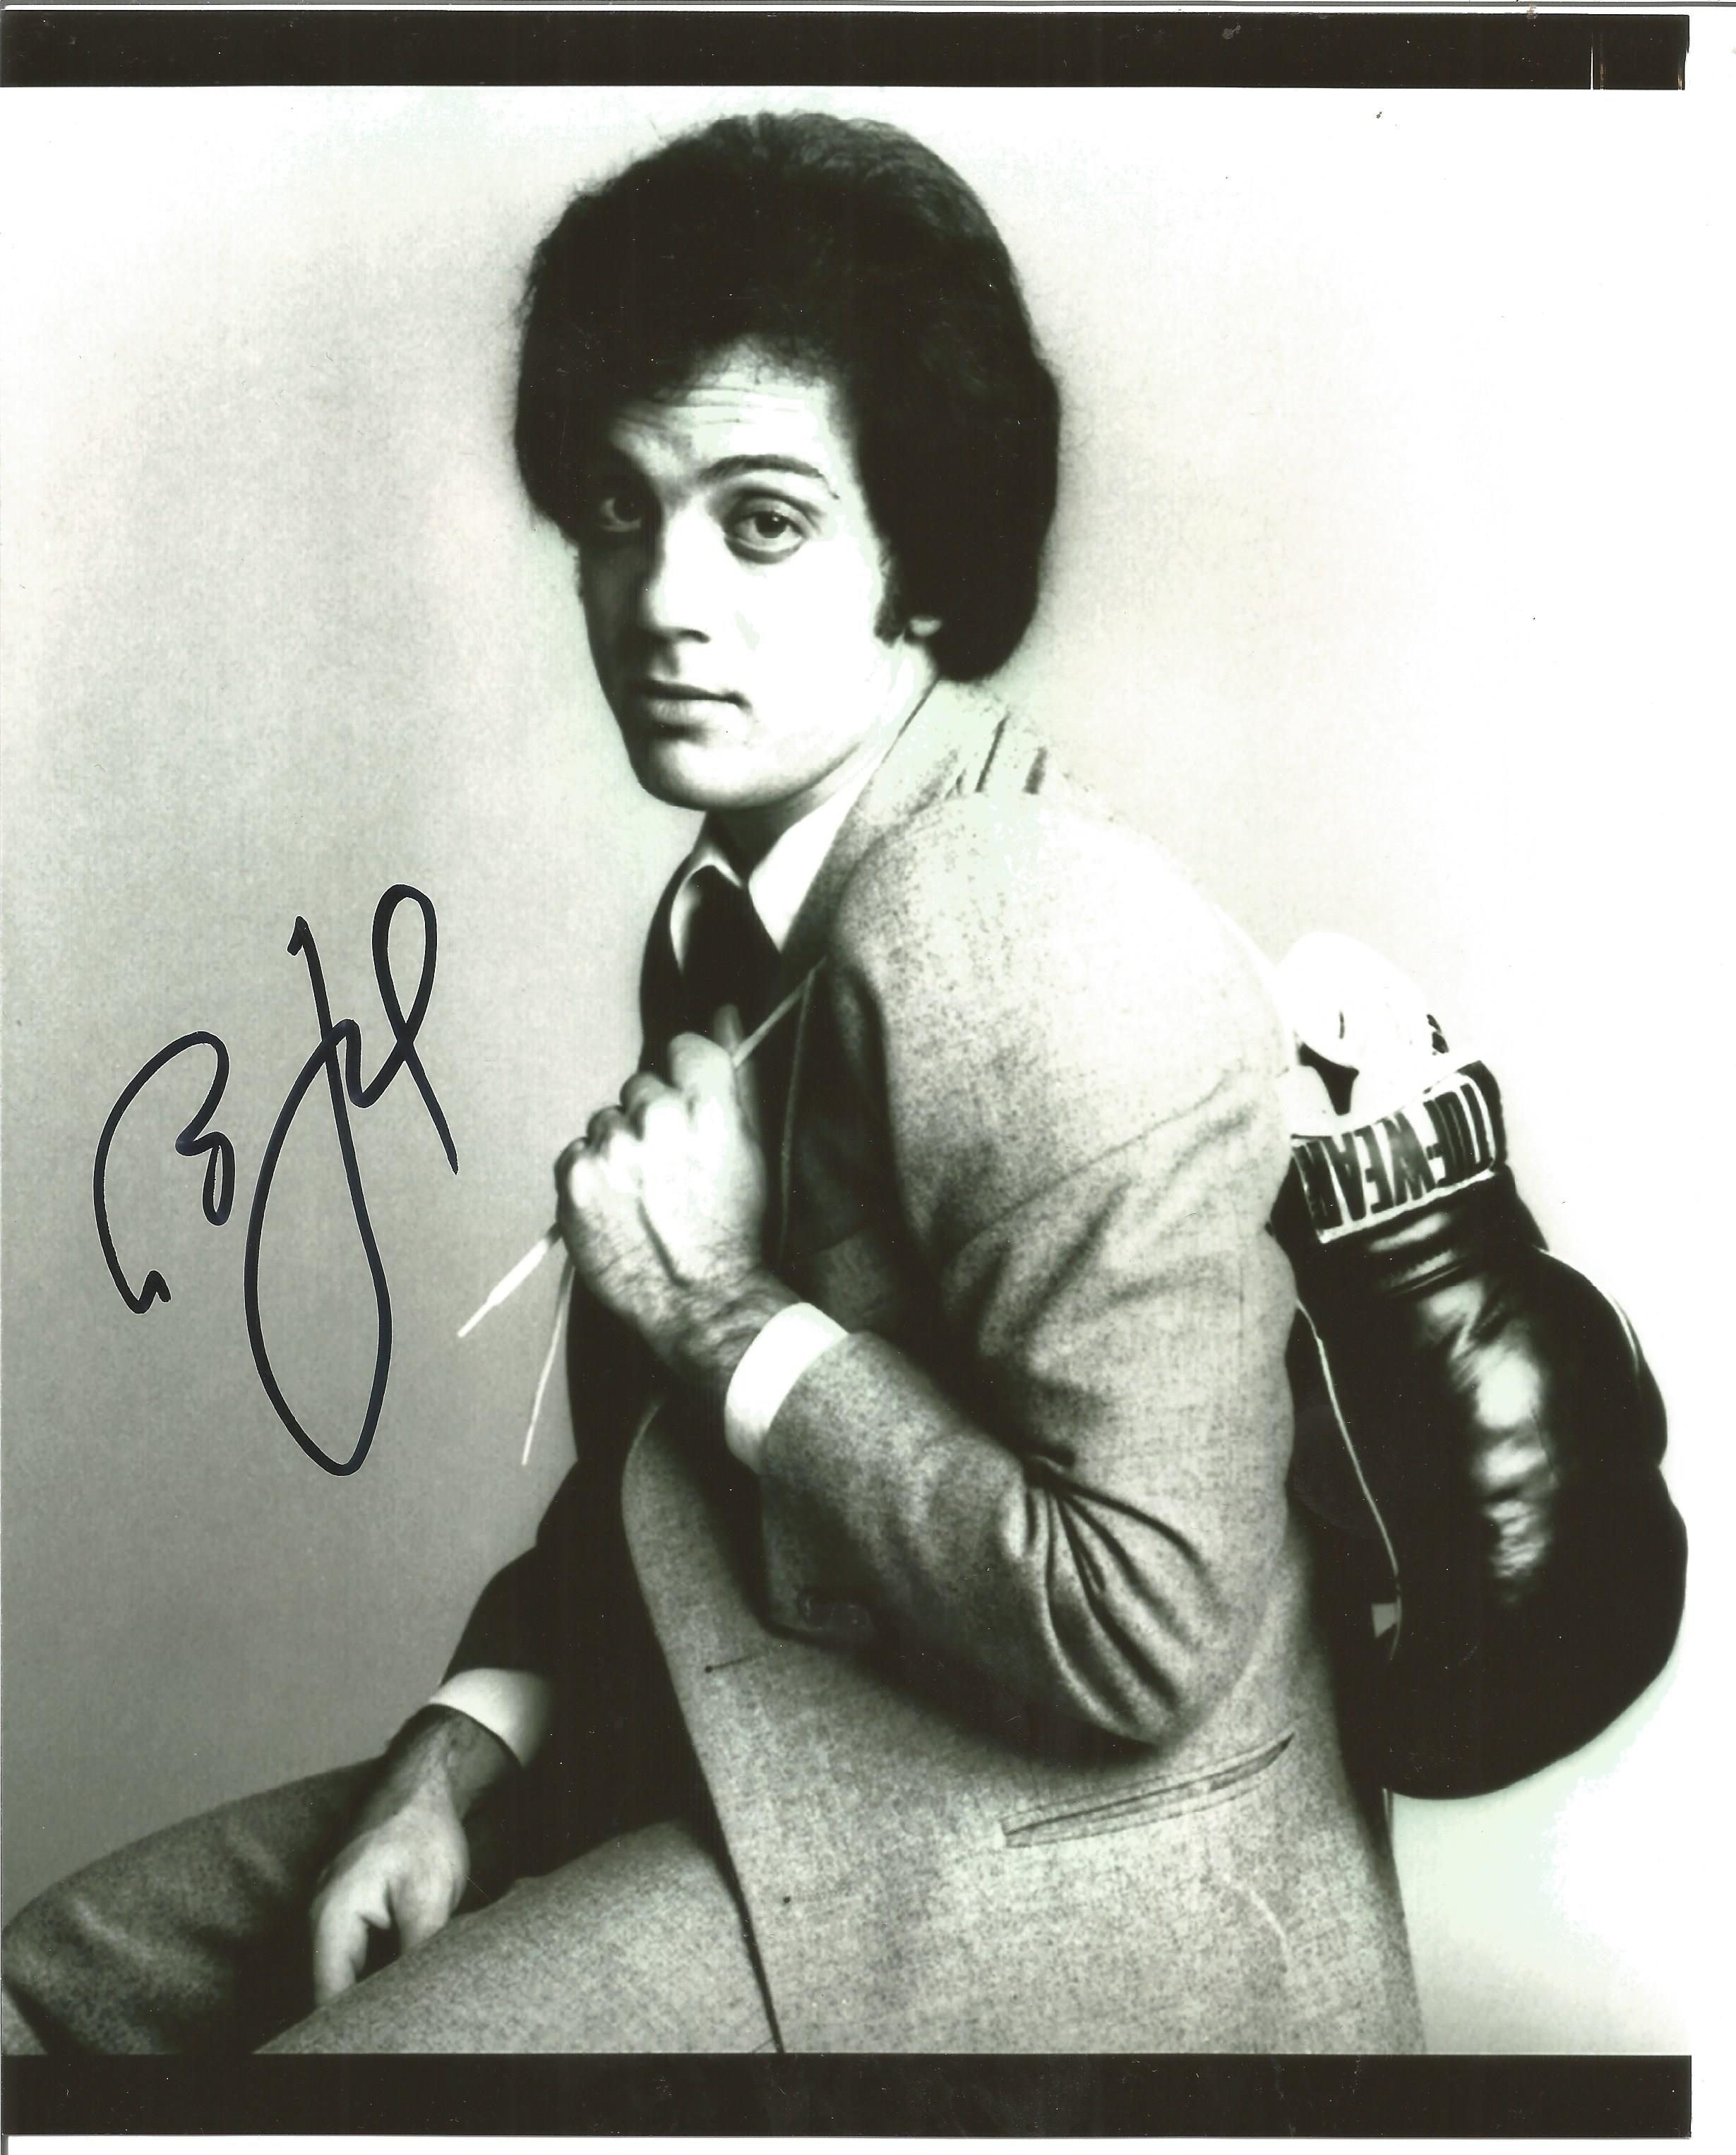 Lot 57 - Music Billy Joel signed 12 x 8 inch bw photo nice early image with boxing gloves over shoulder. Good